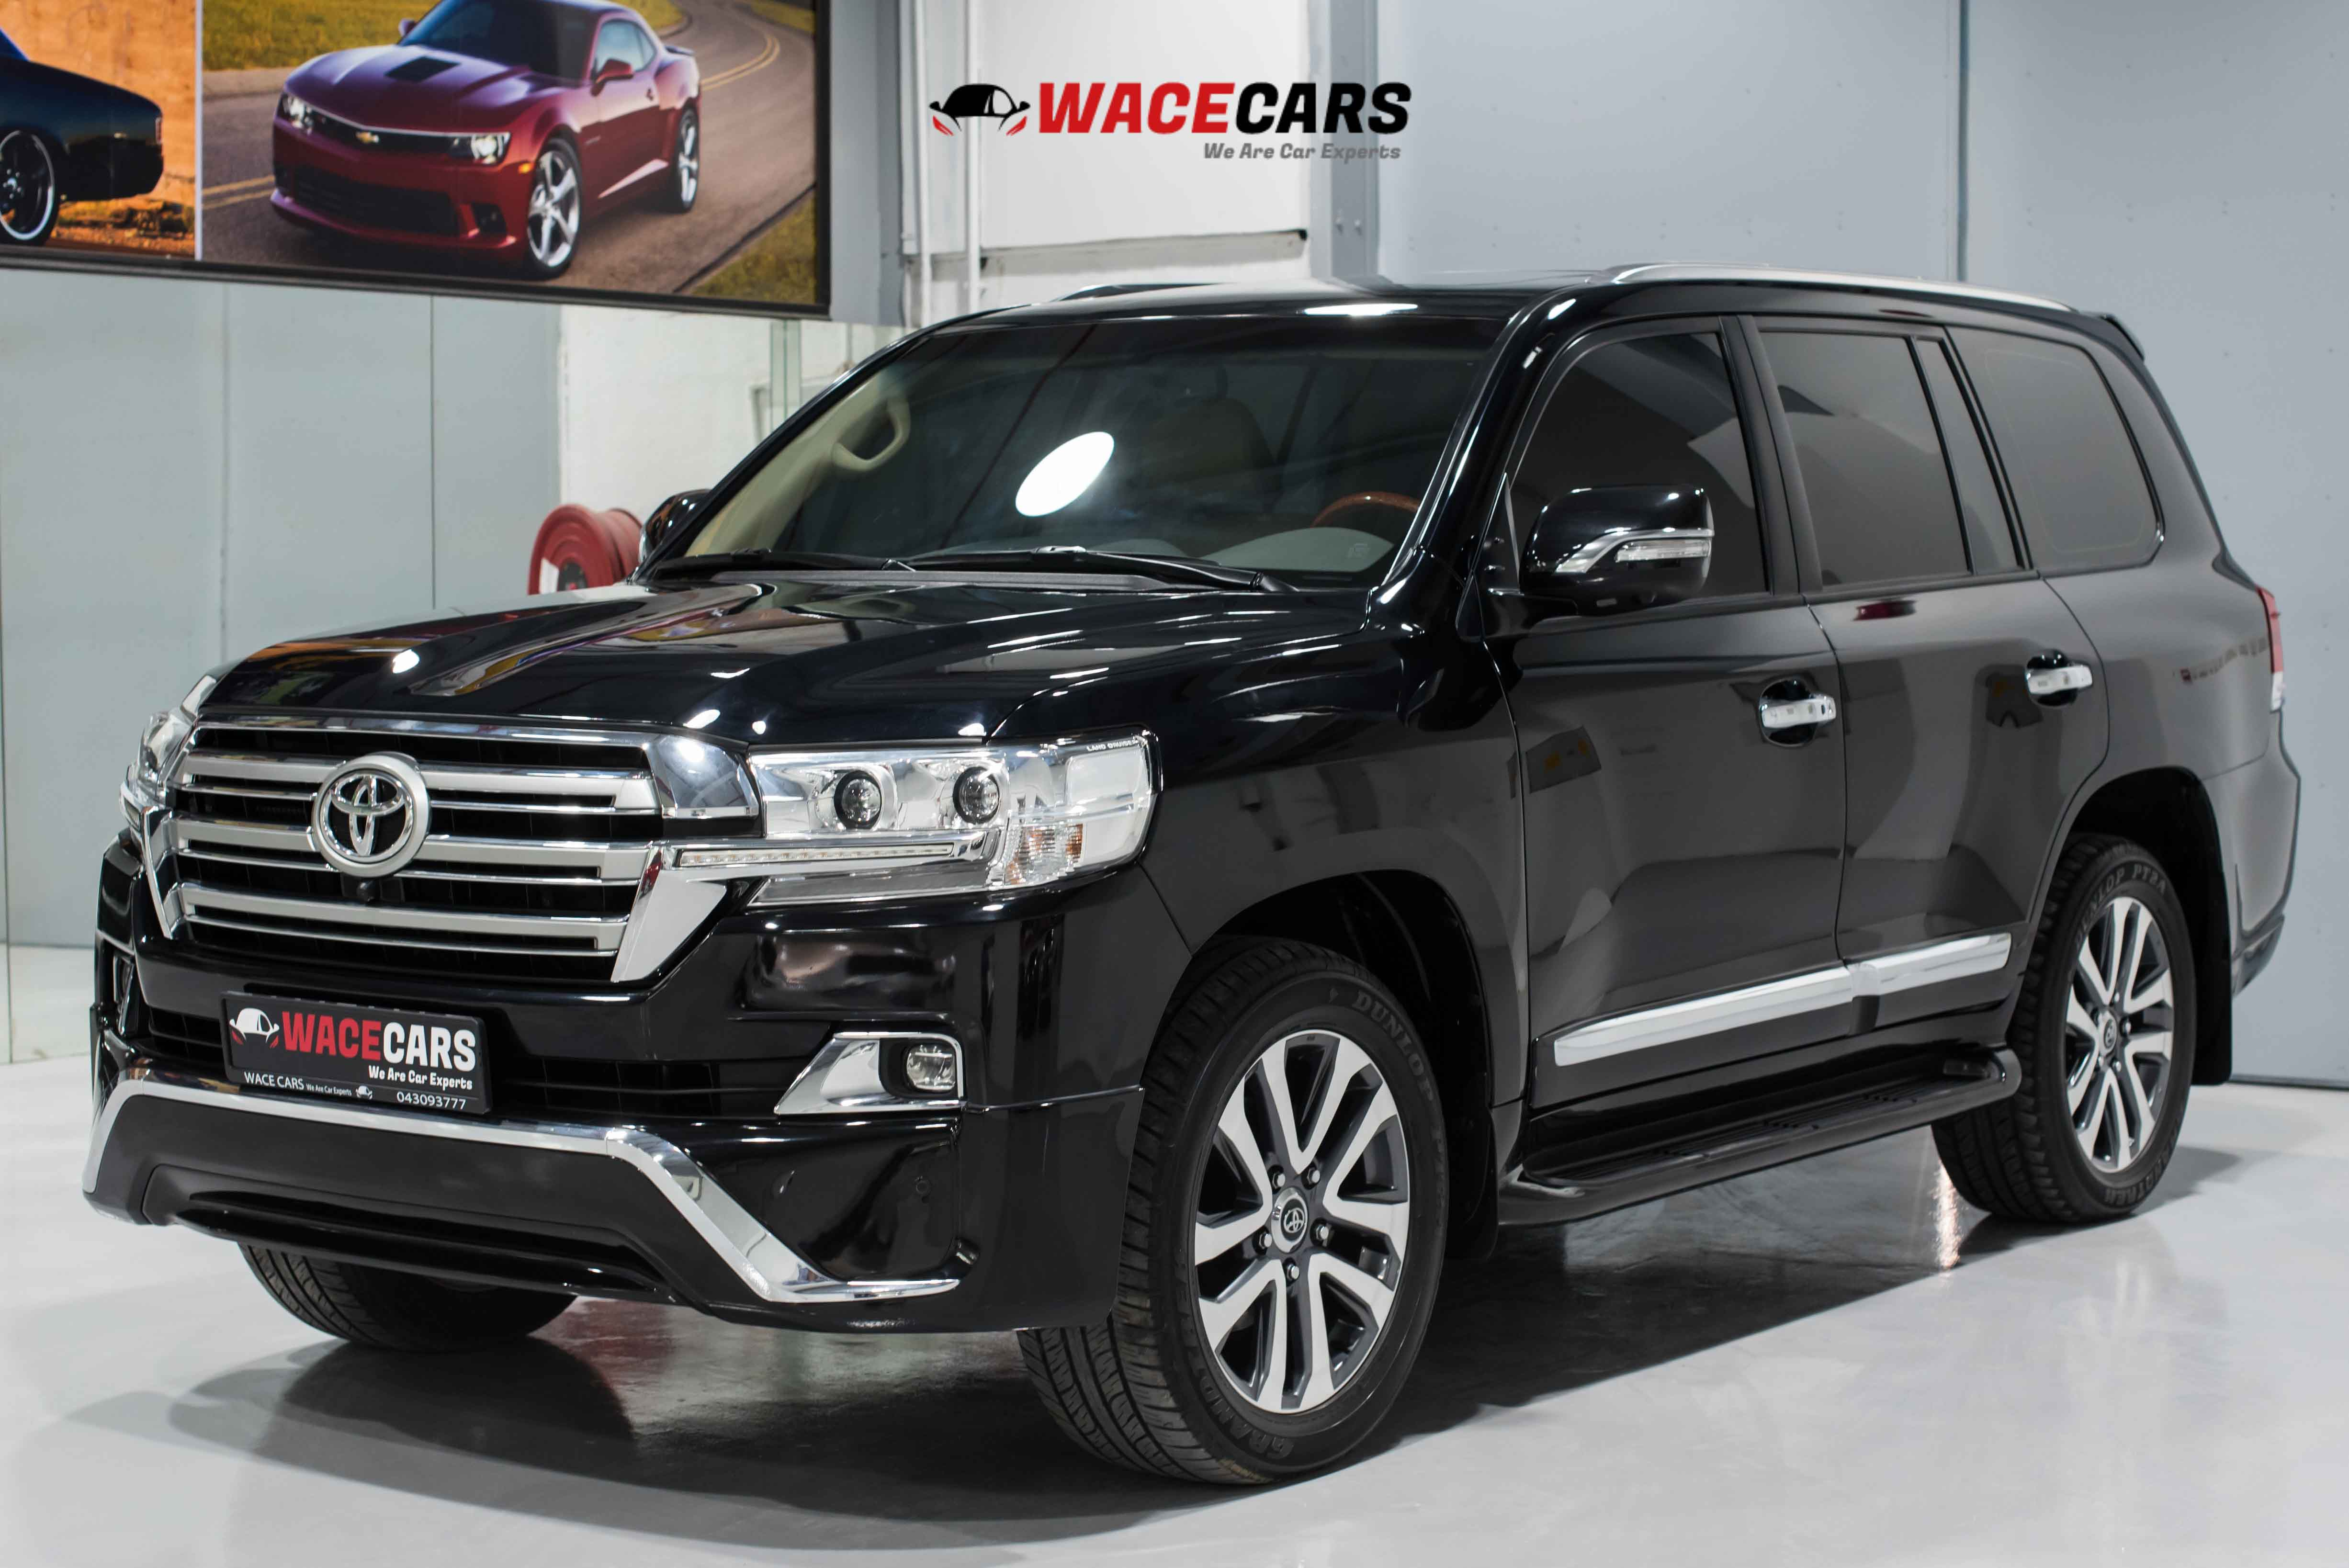 Used Toyota Land Cruiser 4.6L GXR 2012 For Sale In Dubai